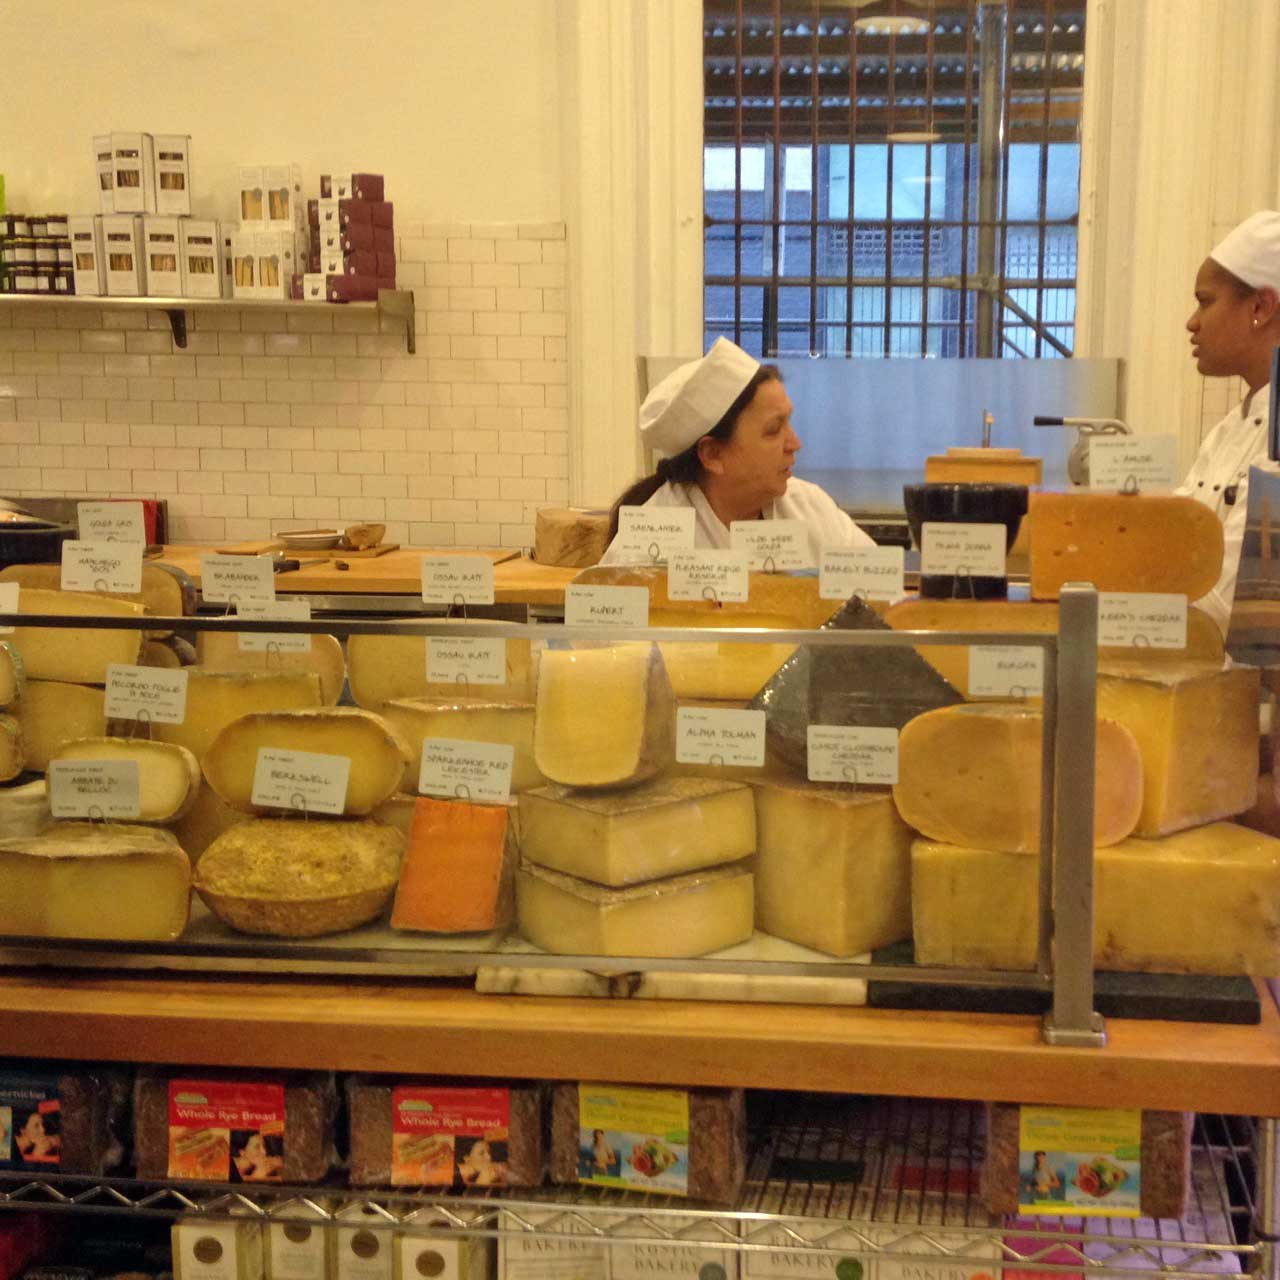 Inside Dean and DeLuca of Soho